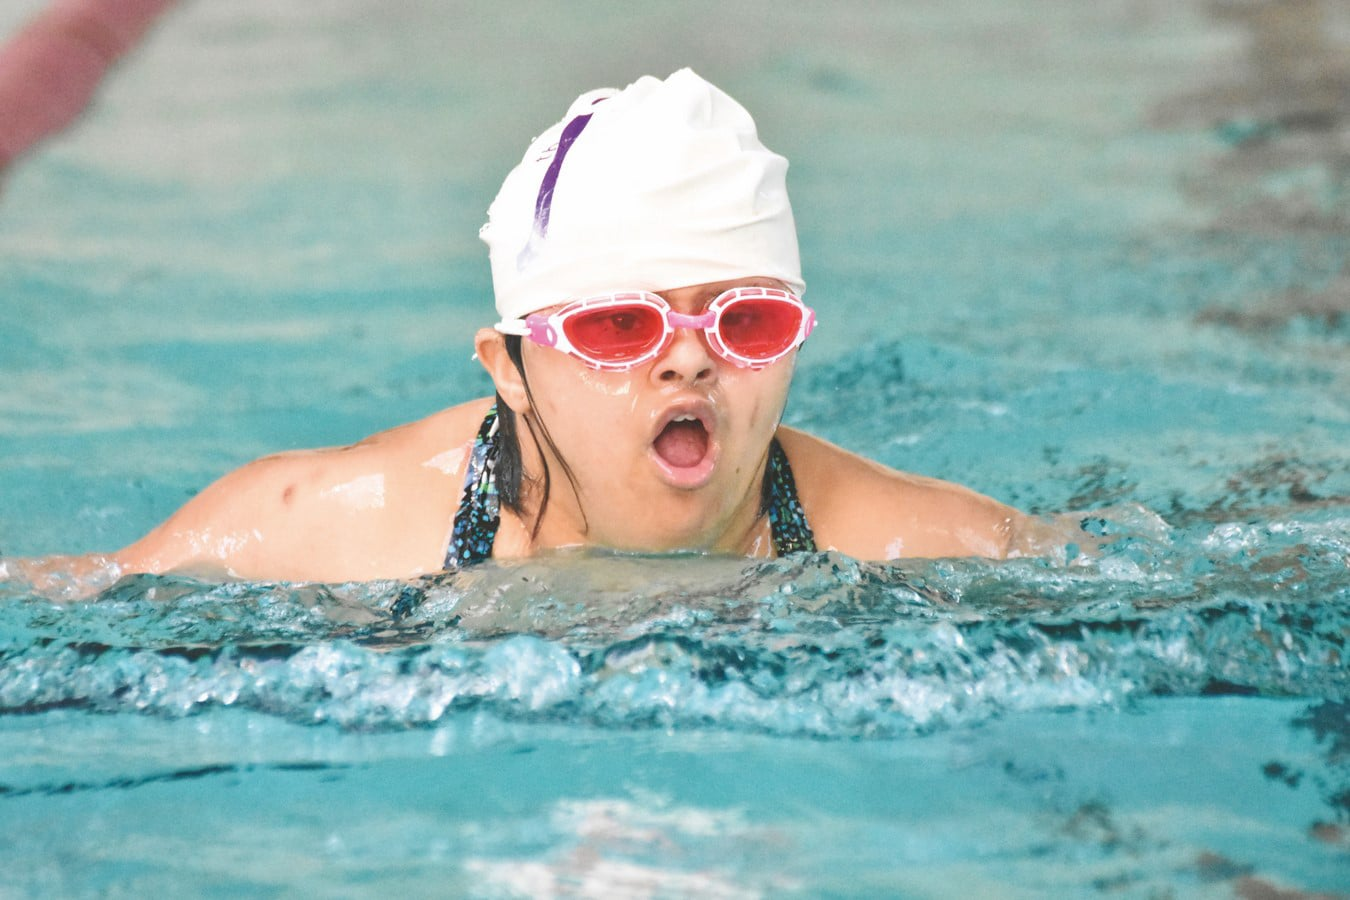 A swimmer with rose-colored goggles comes out of the water to take a large breath